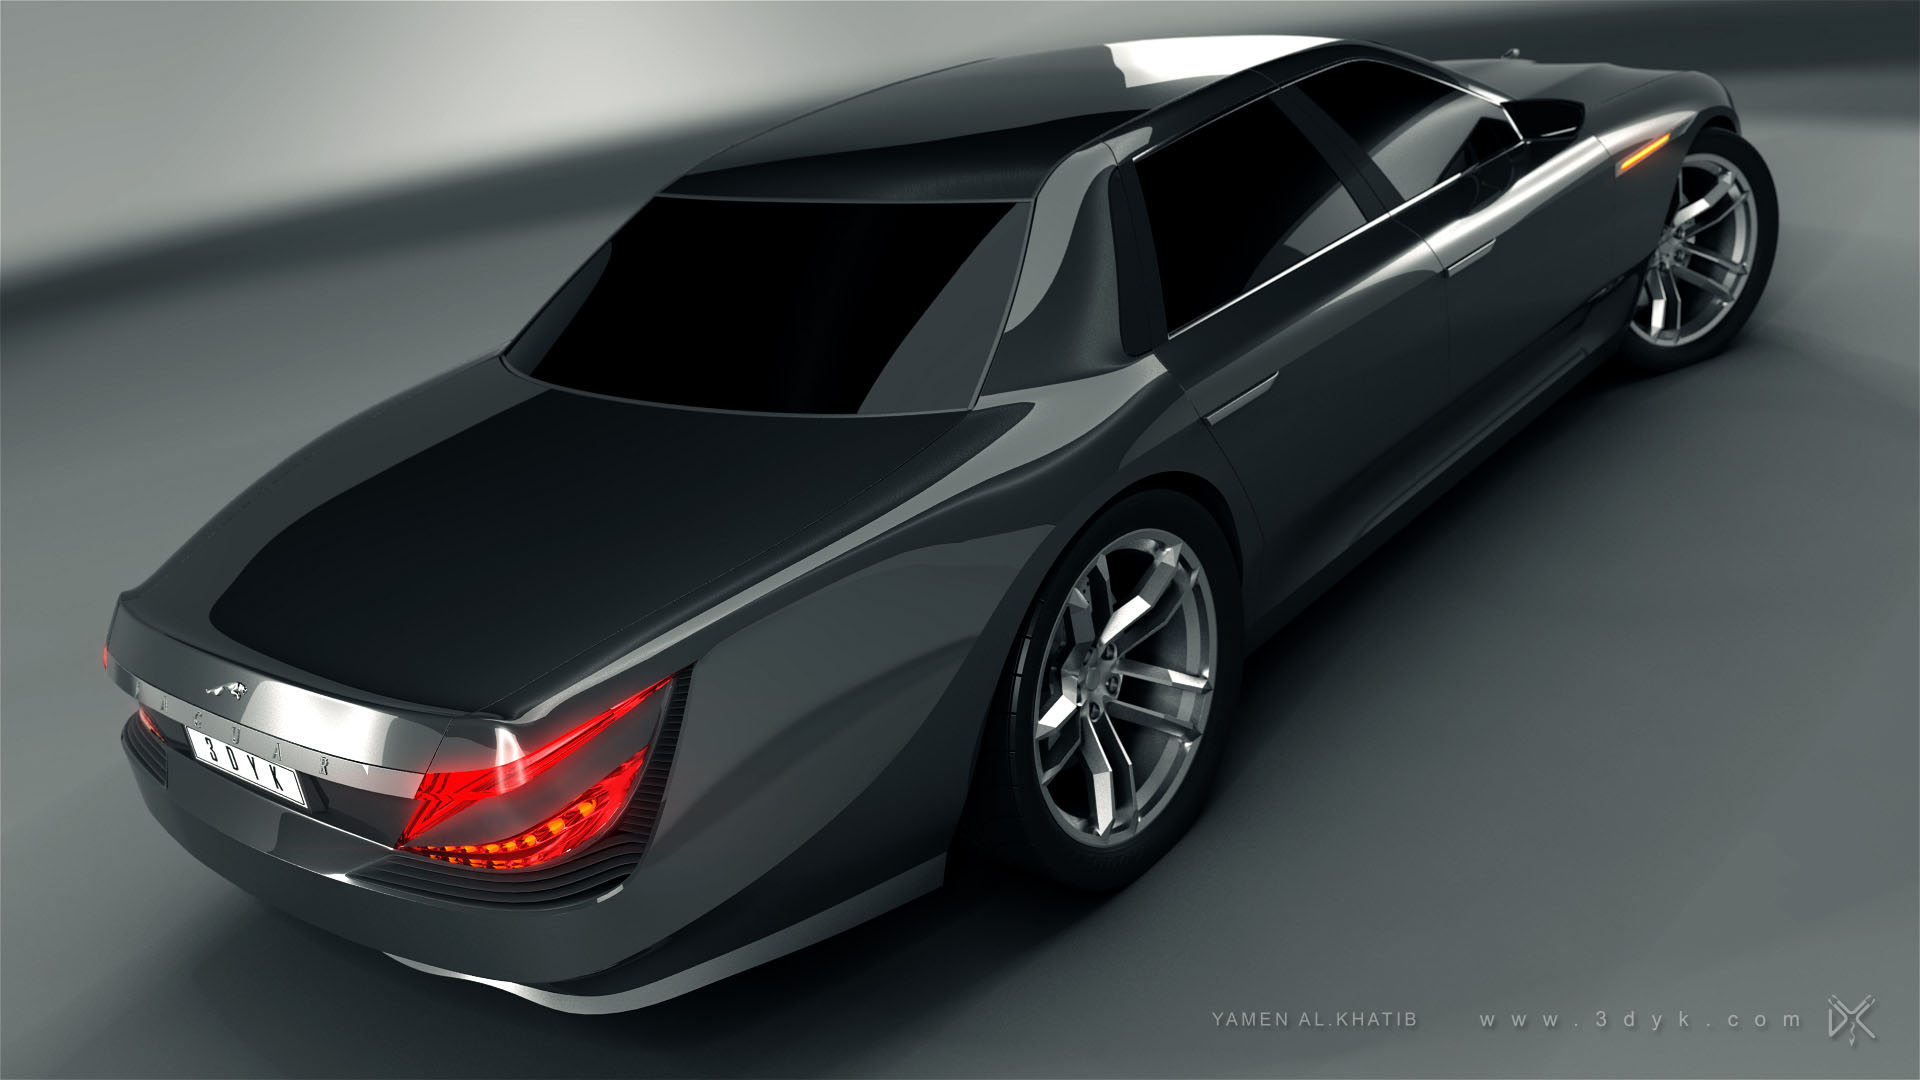 JAGUAR XJ Concept Car By Yamen Alkhatib.